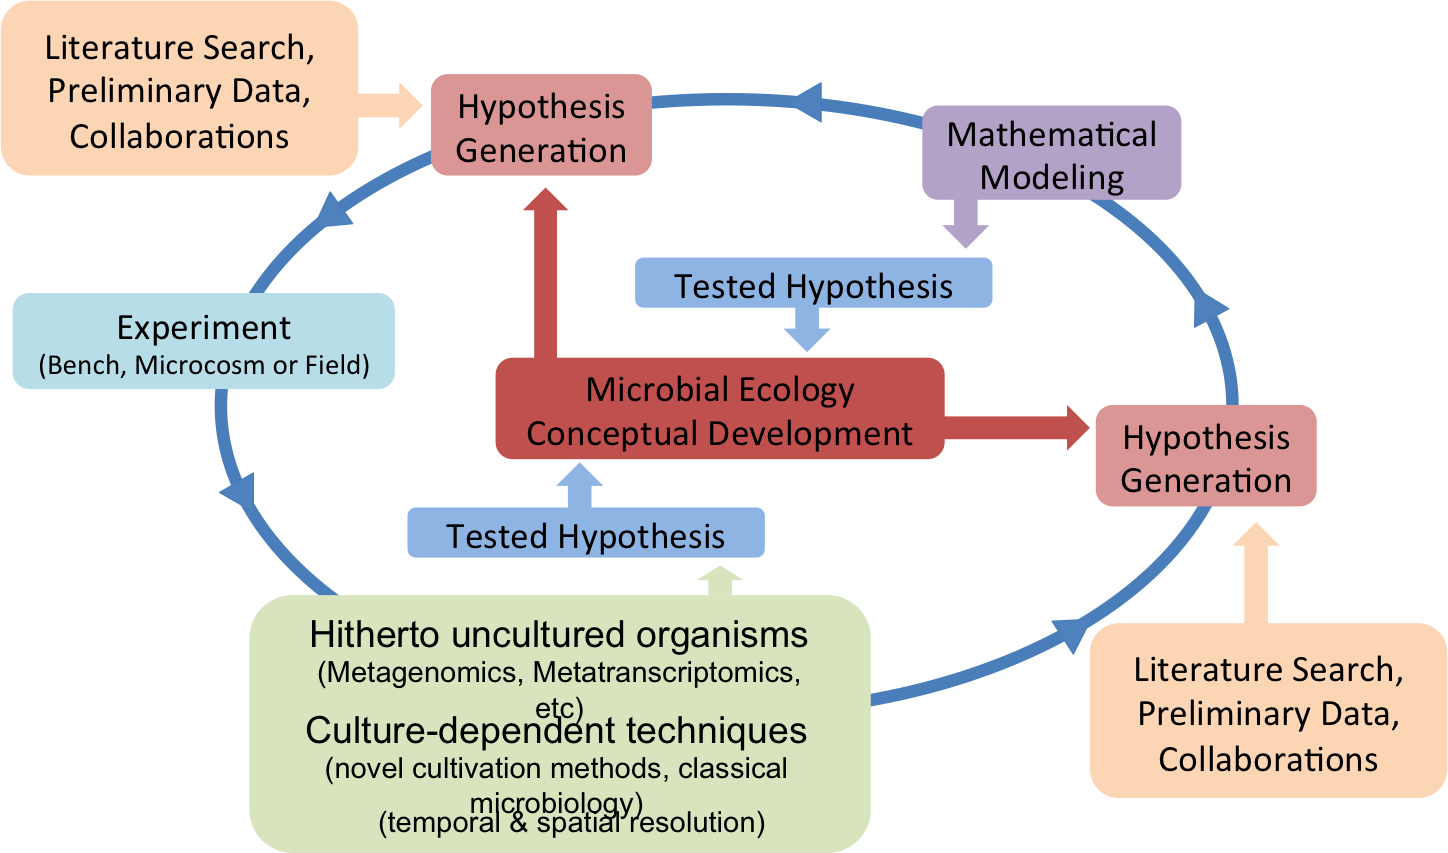 Community Systems Biology approach addressing conceptual development in Microbial Ecology.